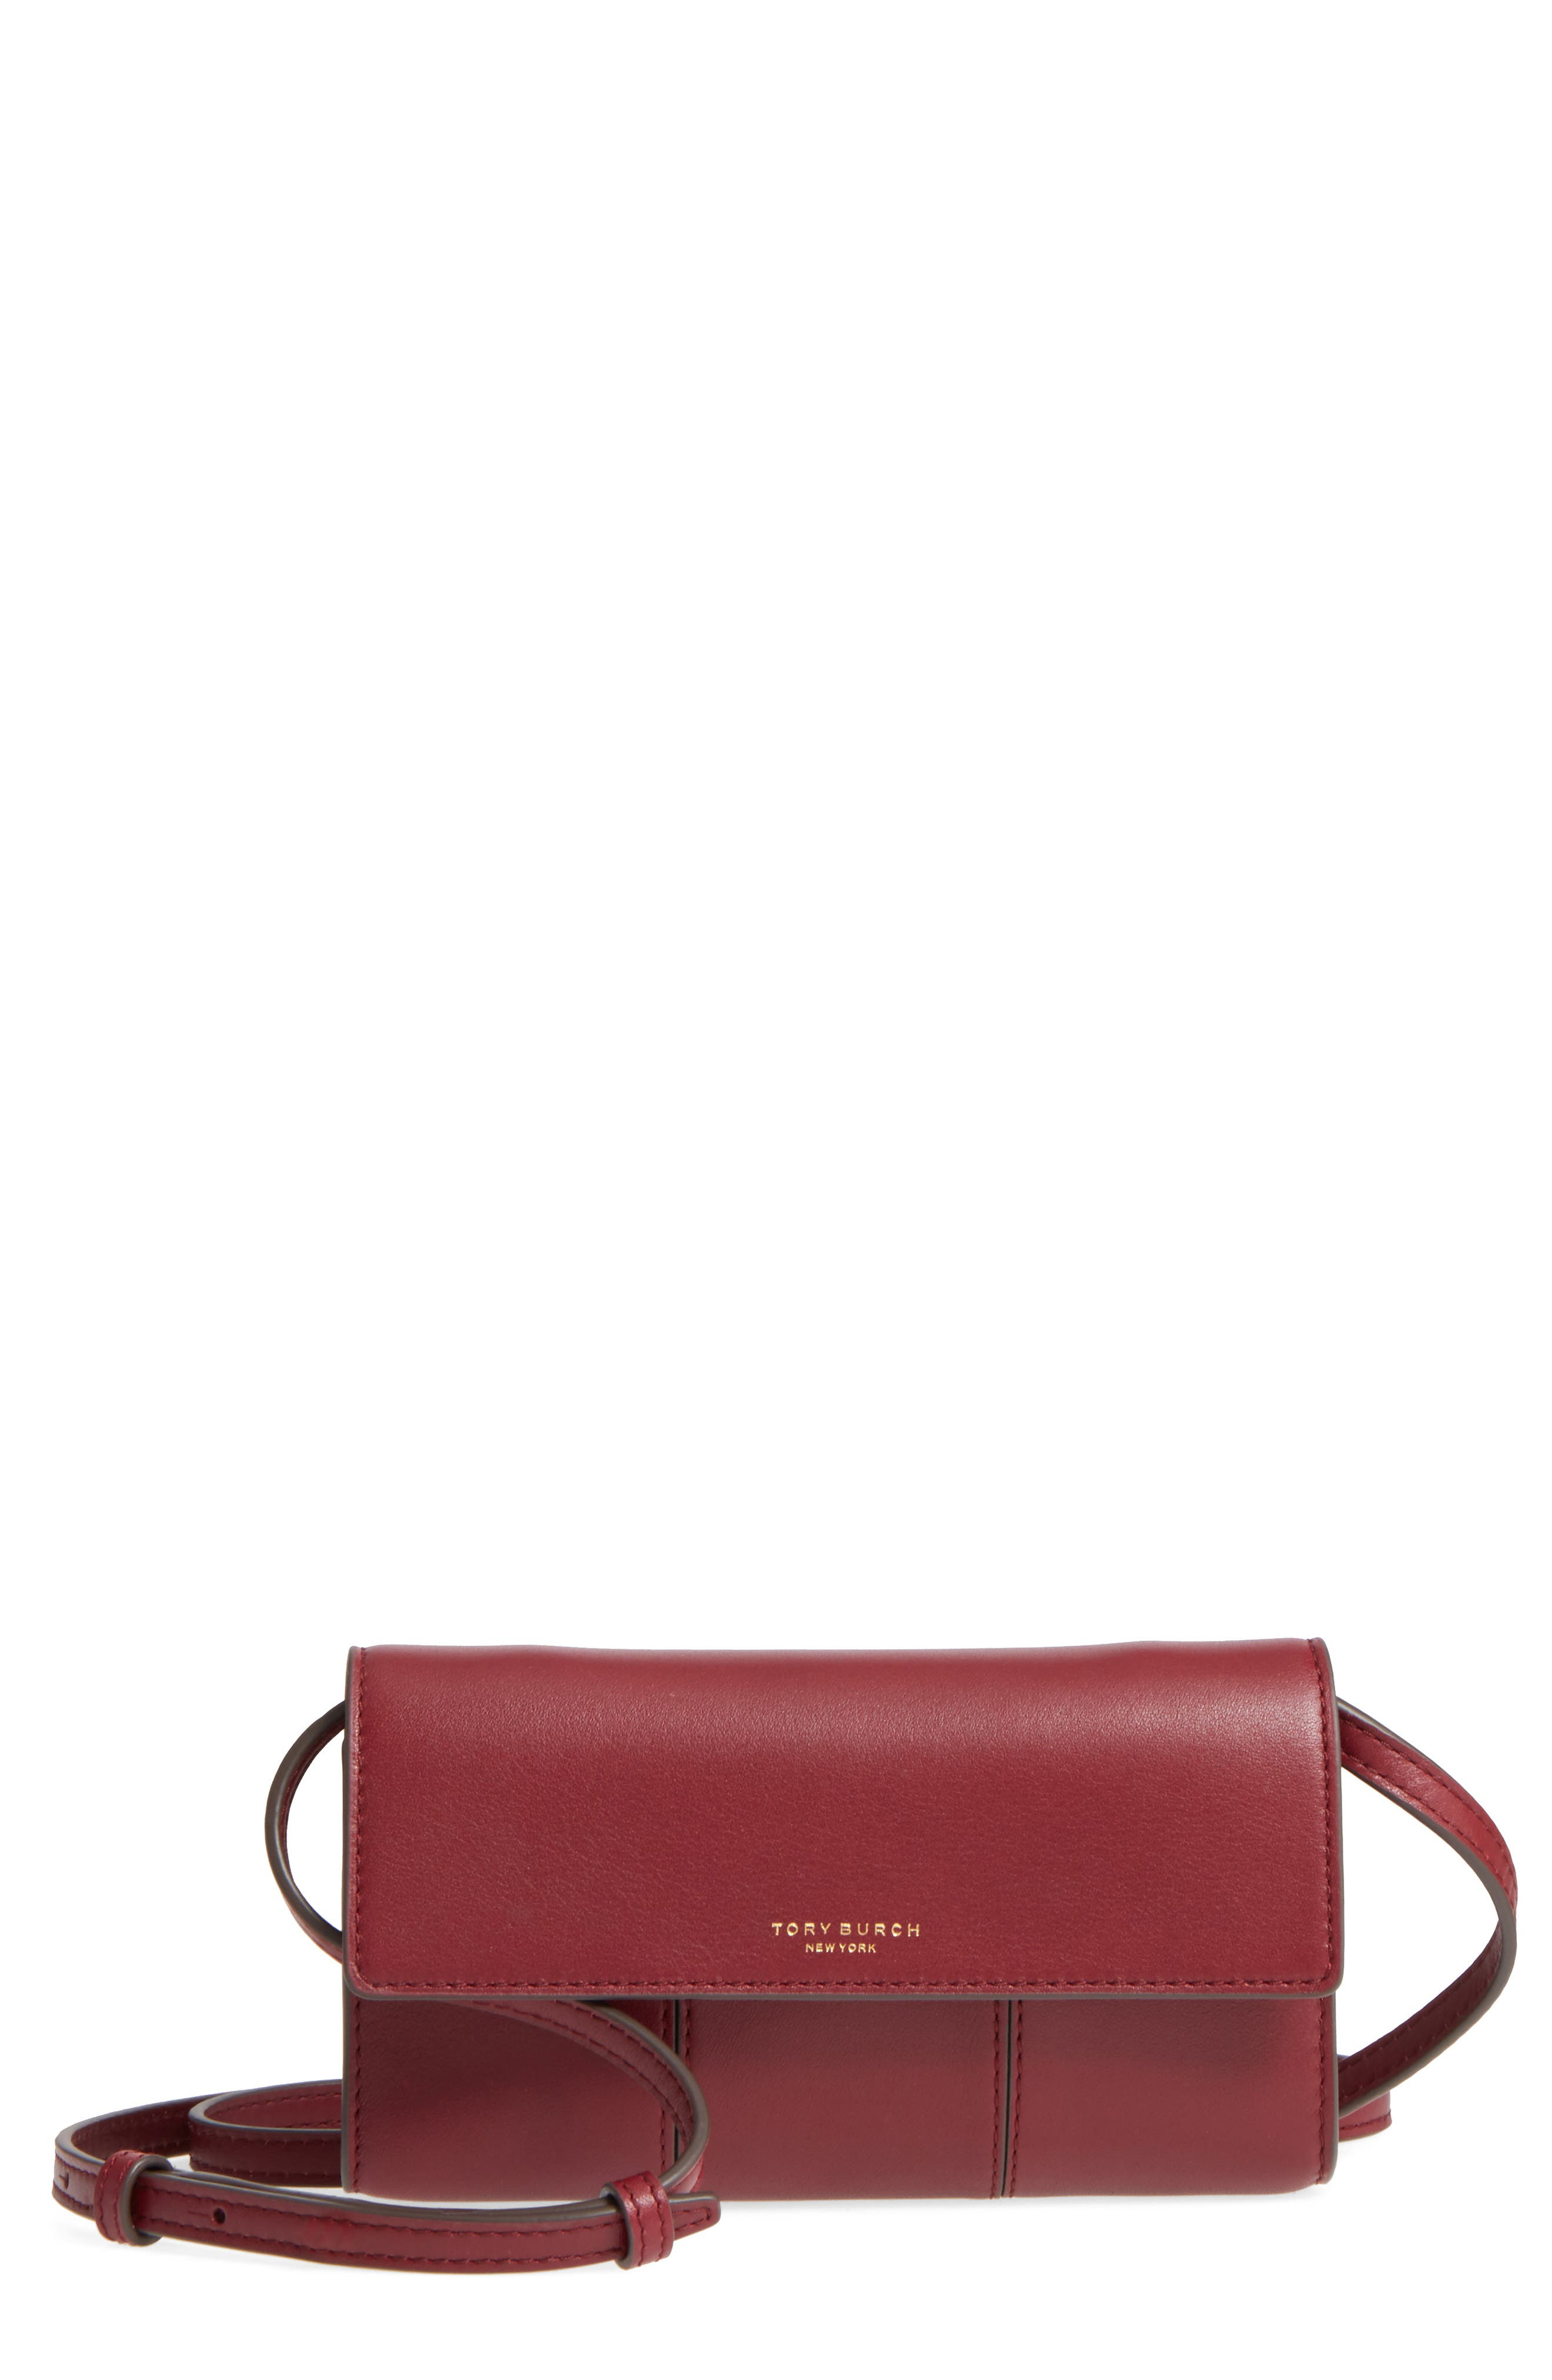 Tory Burch Block-T Leather Crossbody Bag